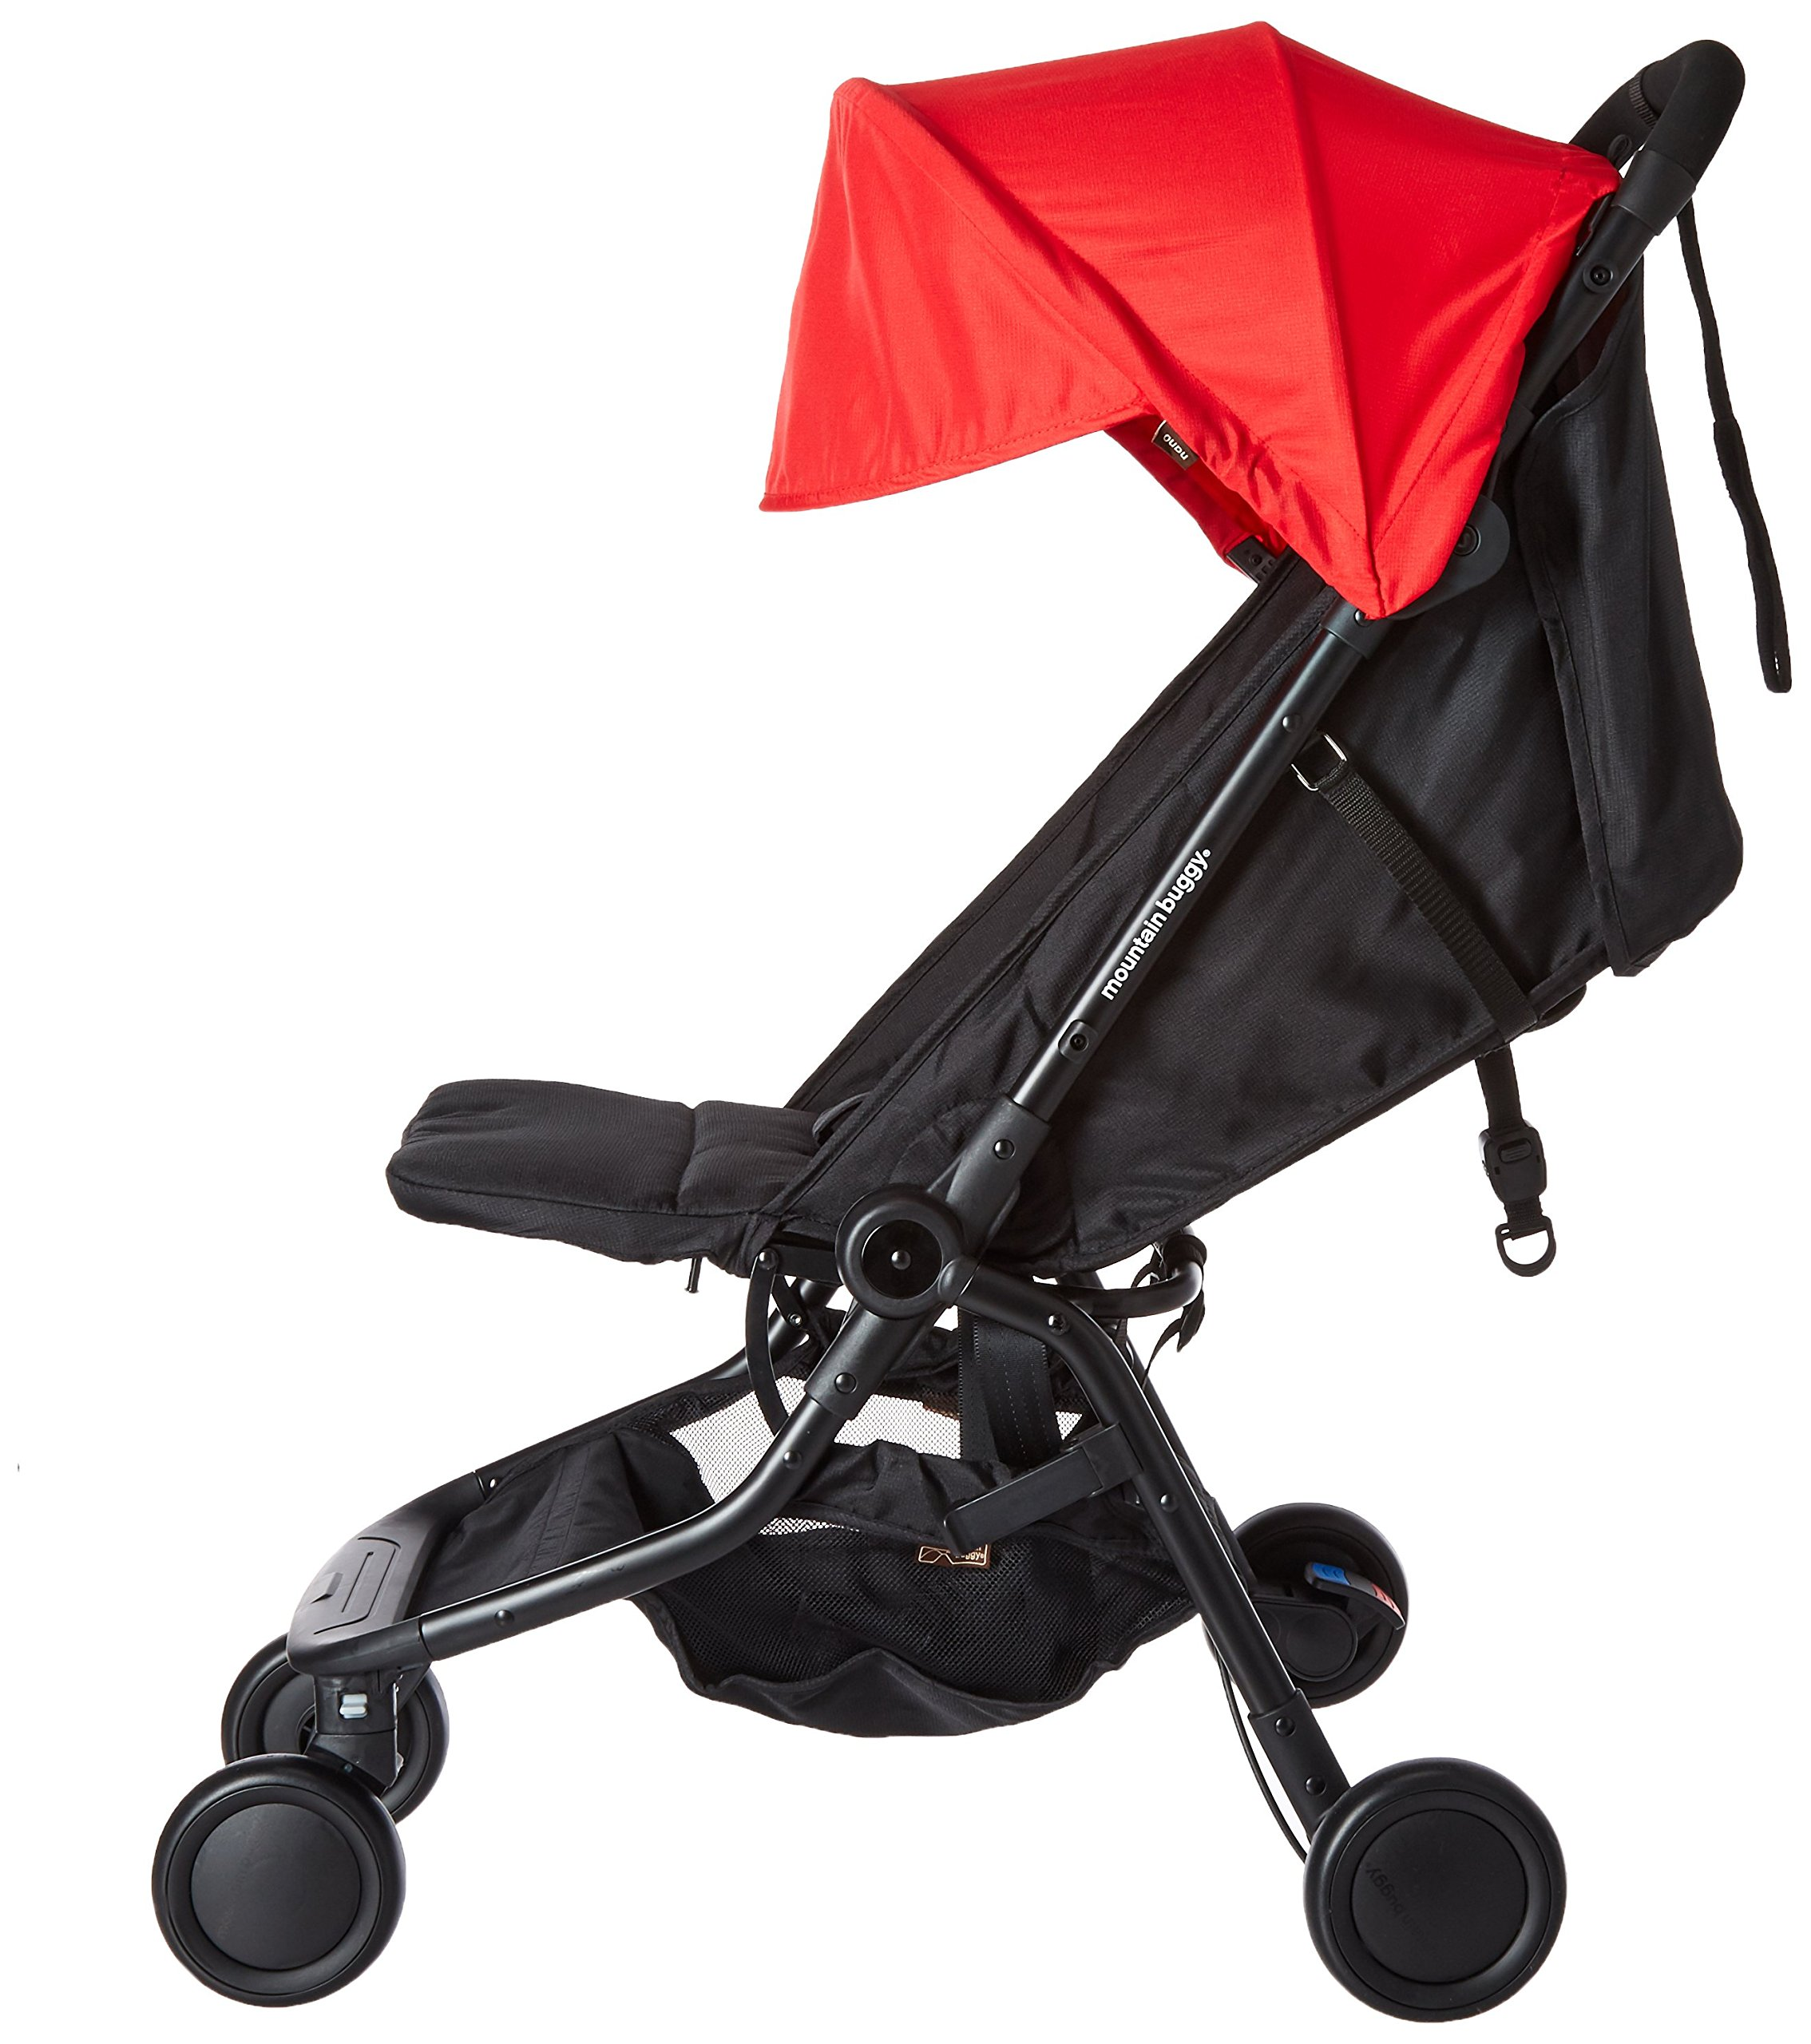 """Mountain Buggy Nano V2-5, Ruby Red Mountain Buggy Infant car seat ready, no need to purchase additional adapters and now has a soft shell cocoon carrycot available (sold separately) for new-borns New, narrower compact size at just 12"""" x 22"""" x 20"""" (folded) with 44 lb. weight capacity and suitable for children up to 4 years Easy two-step, compact fold 4"""